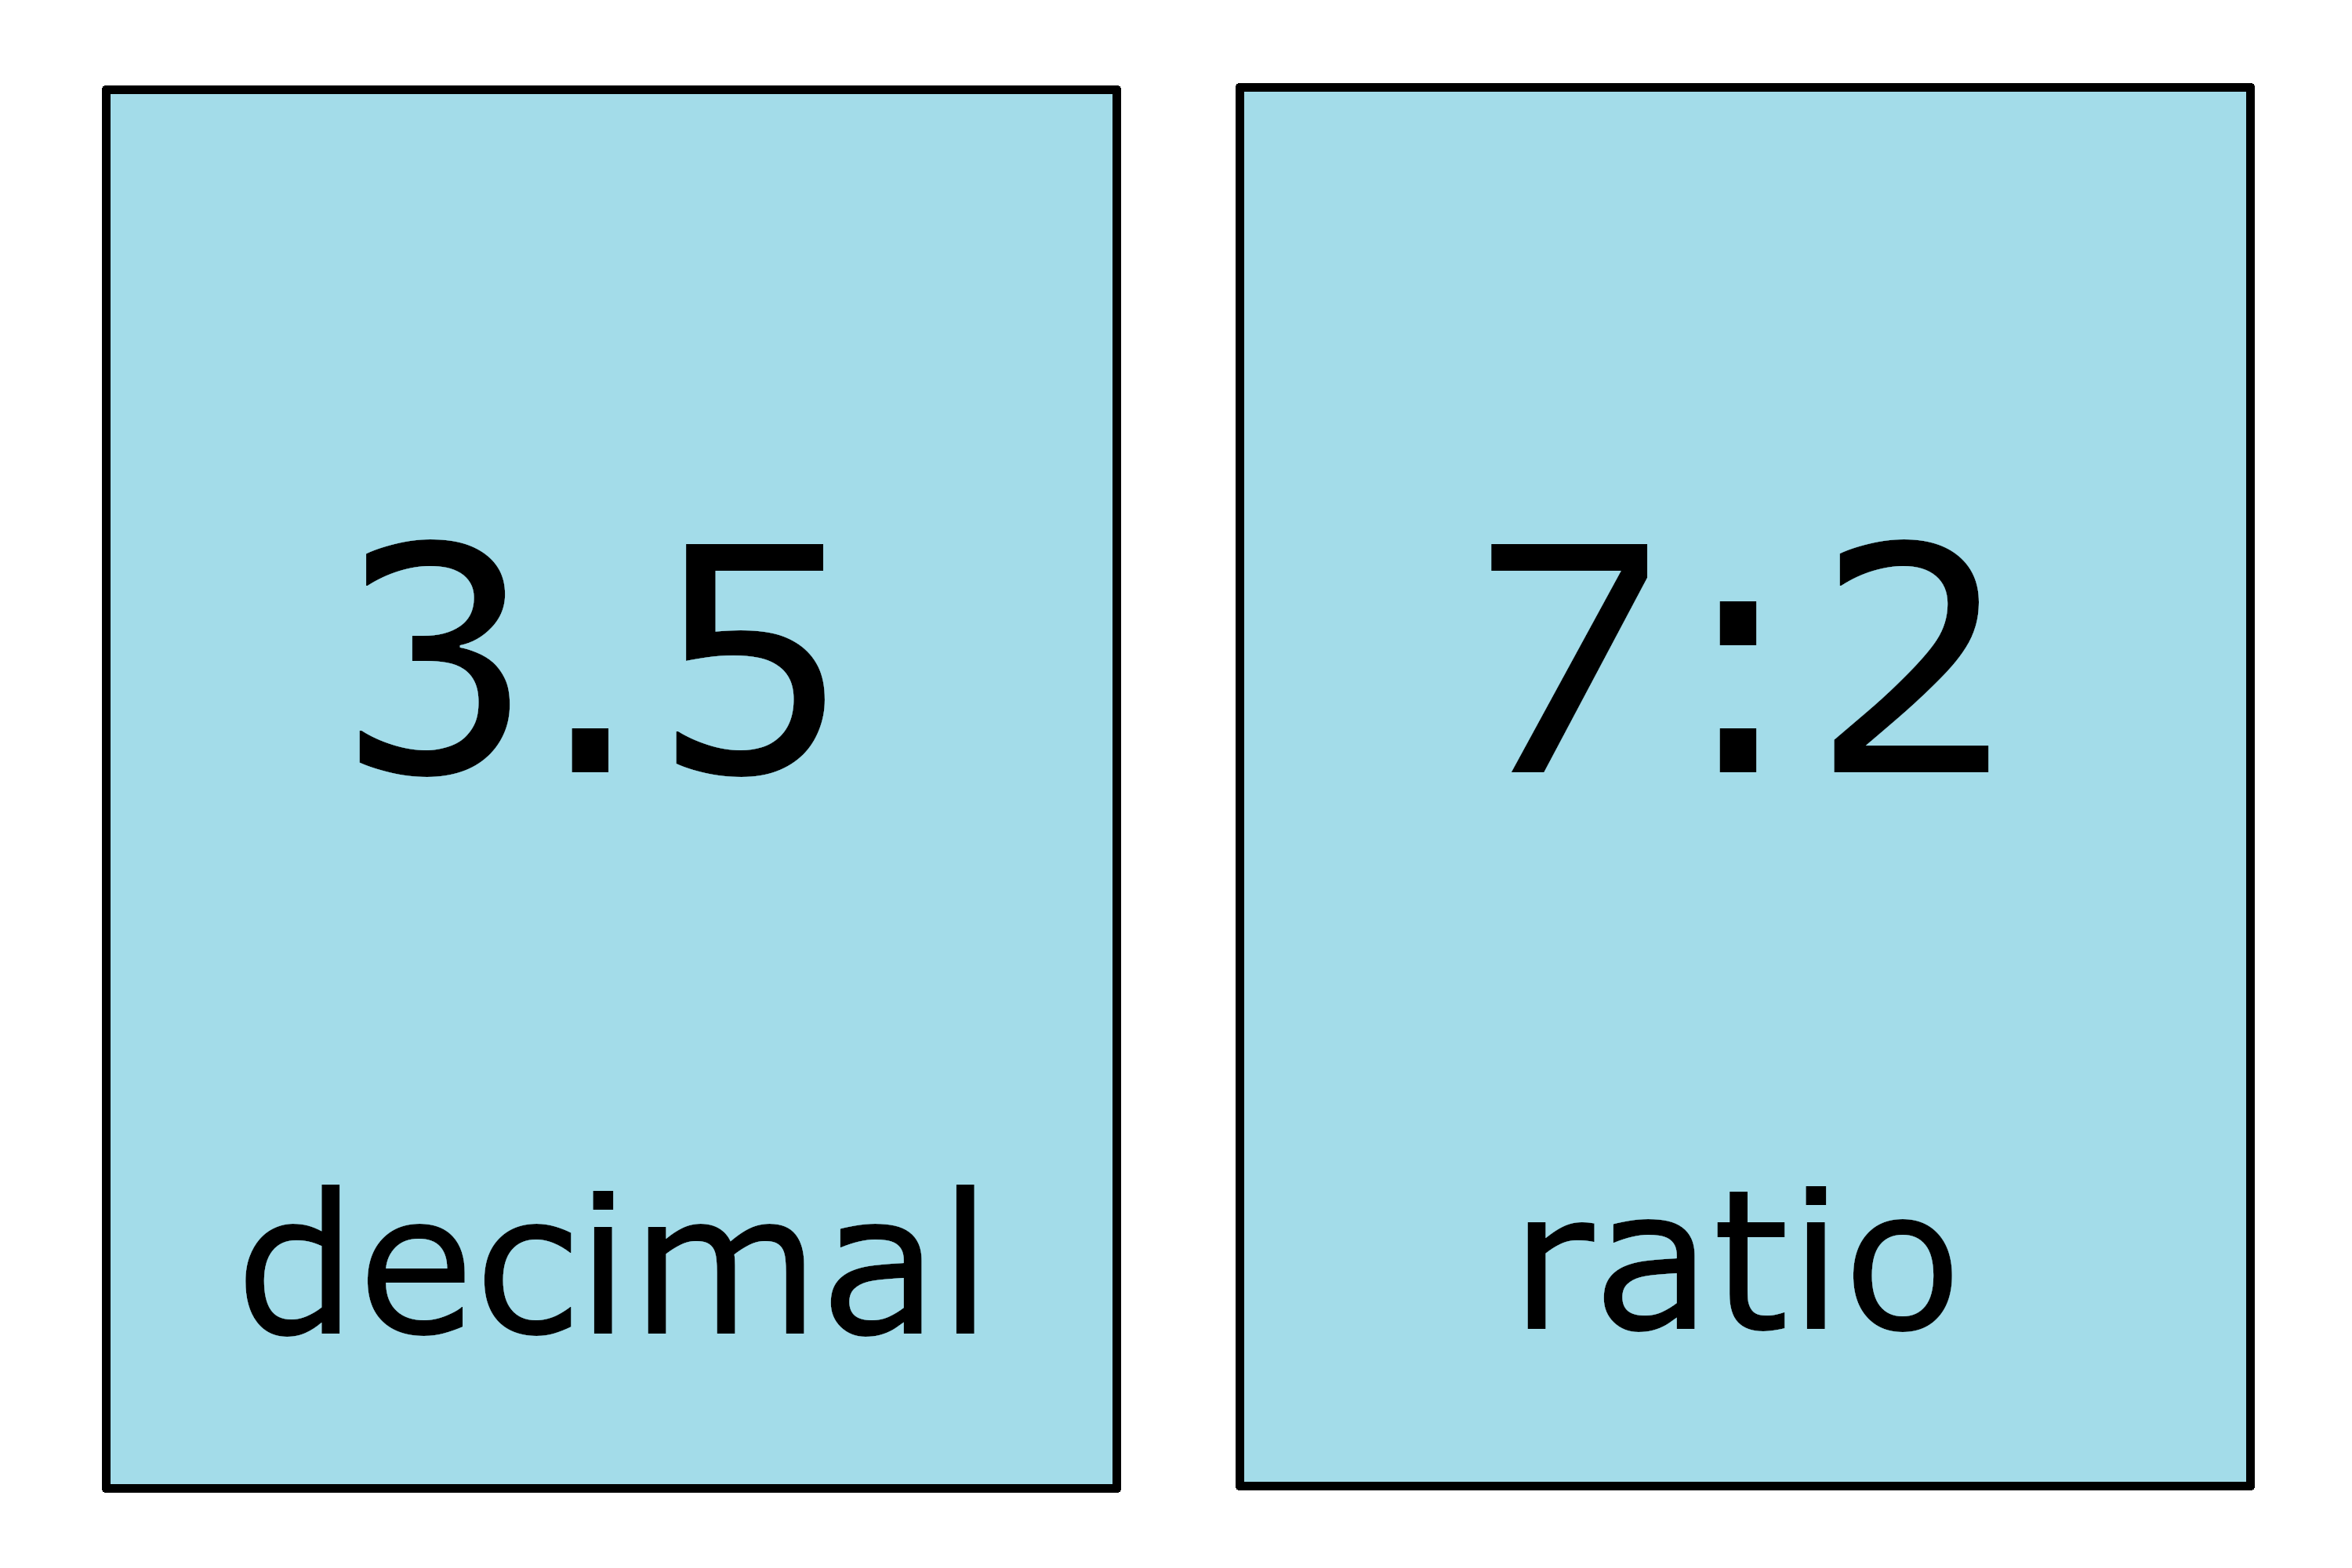 image showing the decimal 3.5 converted to the ratio 7:2